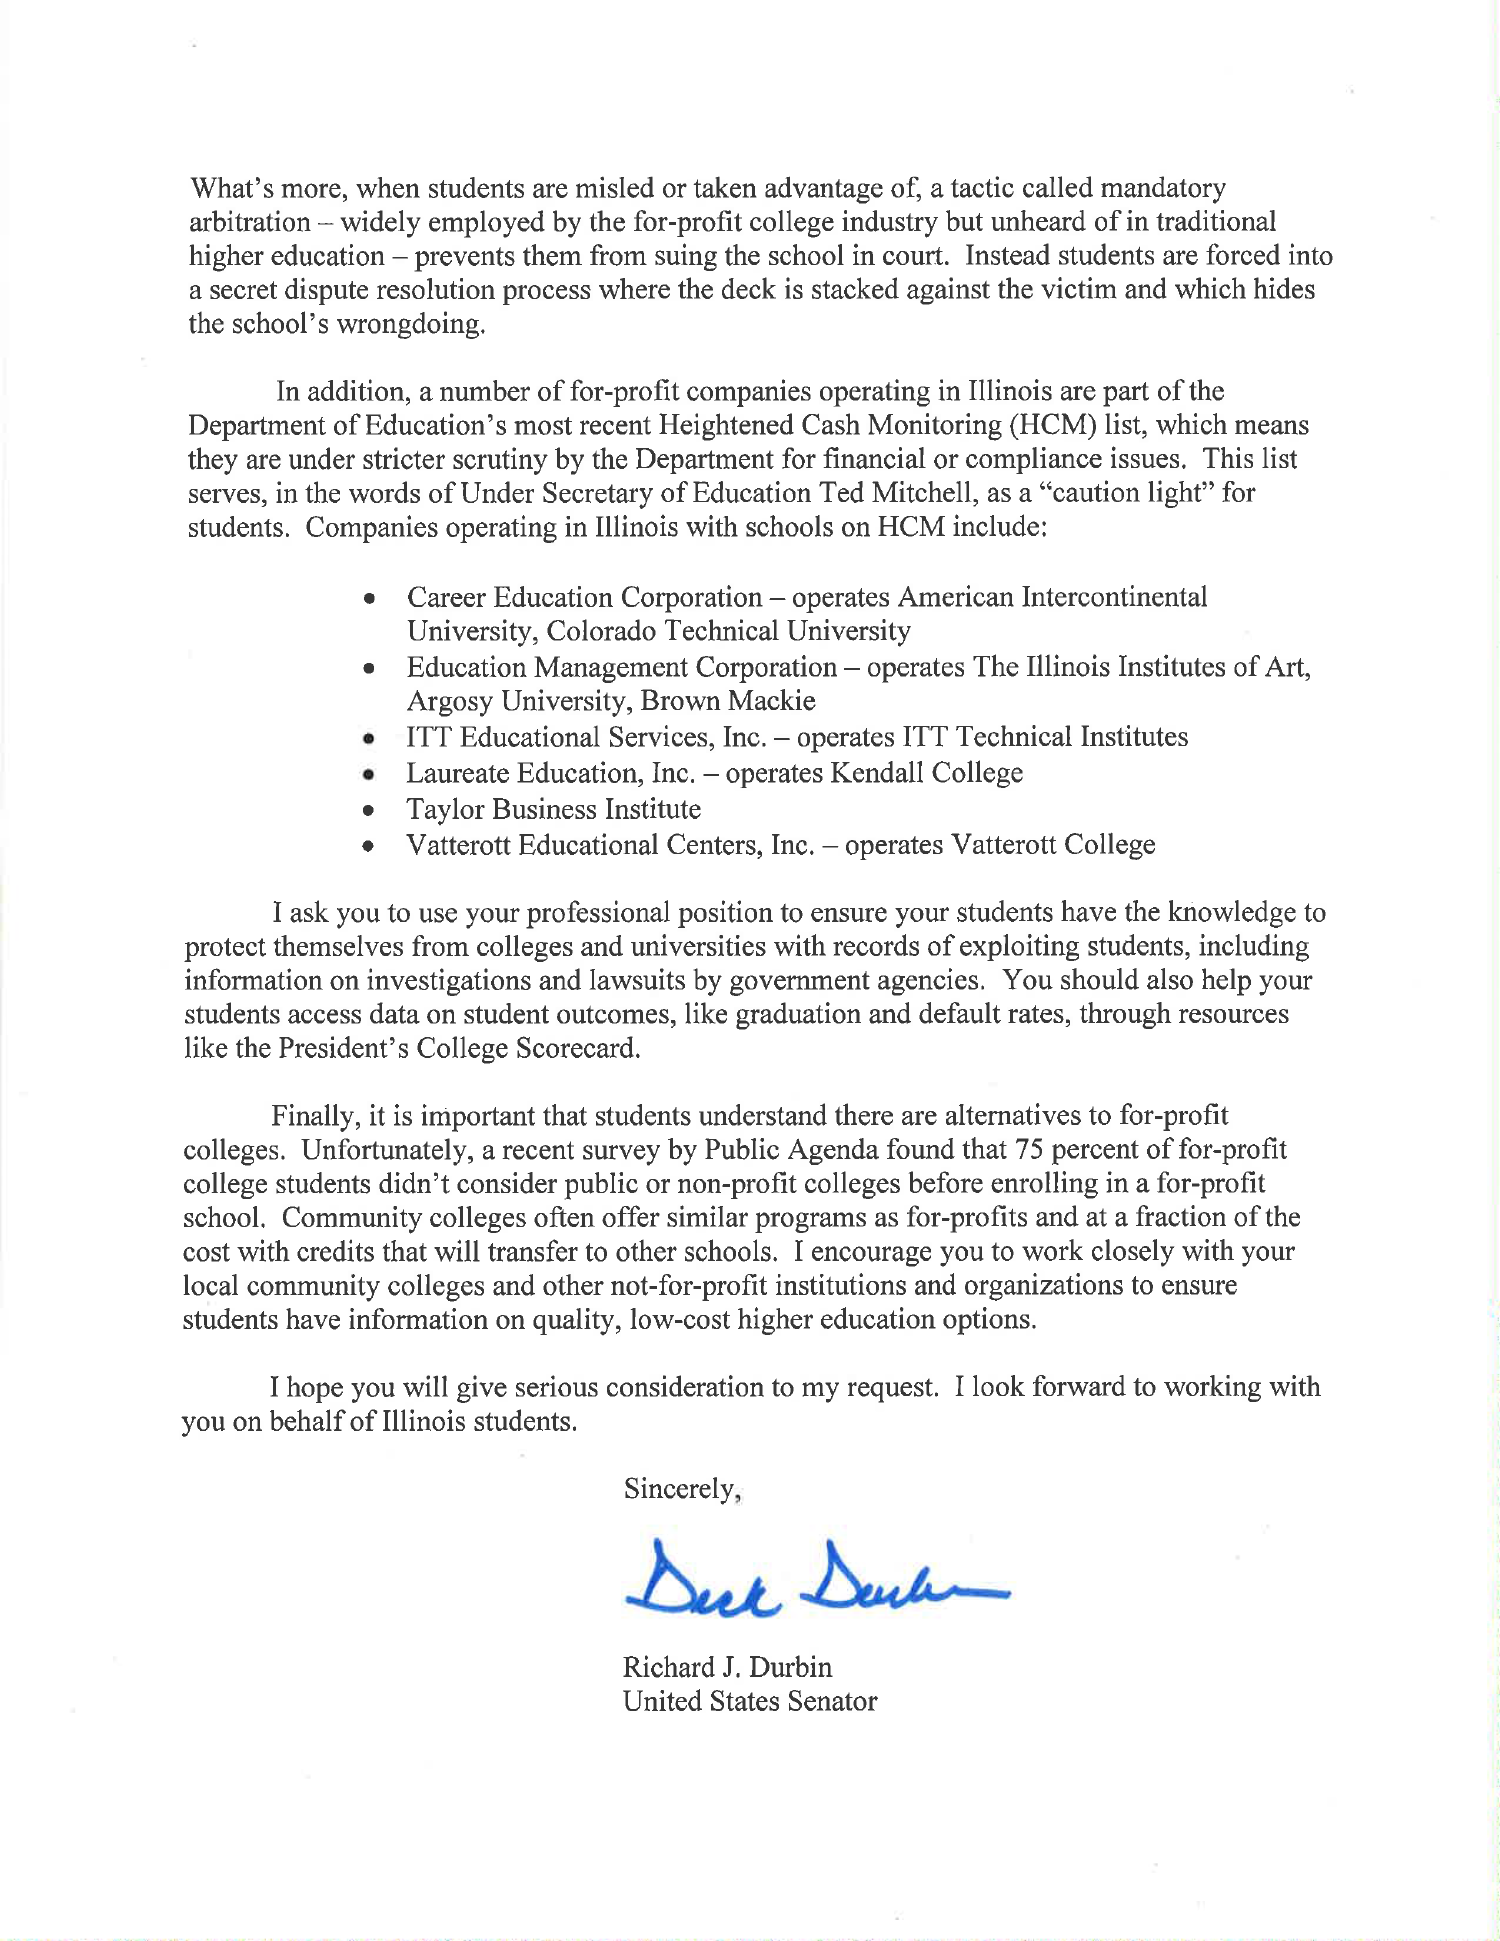 senator durbin s letter to counselors warning of predatory for senator durbin counselor letter for profit colleges 1500 2